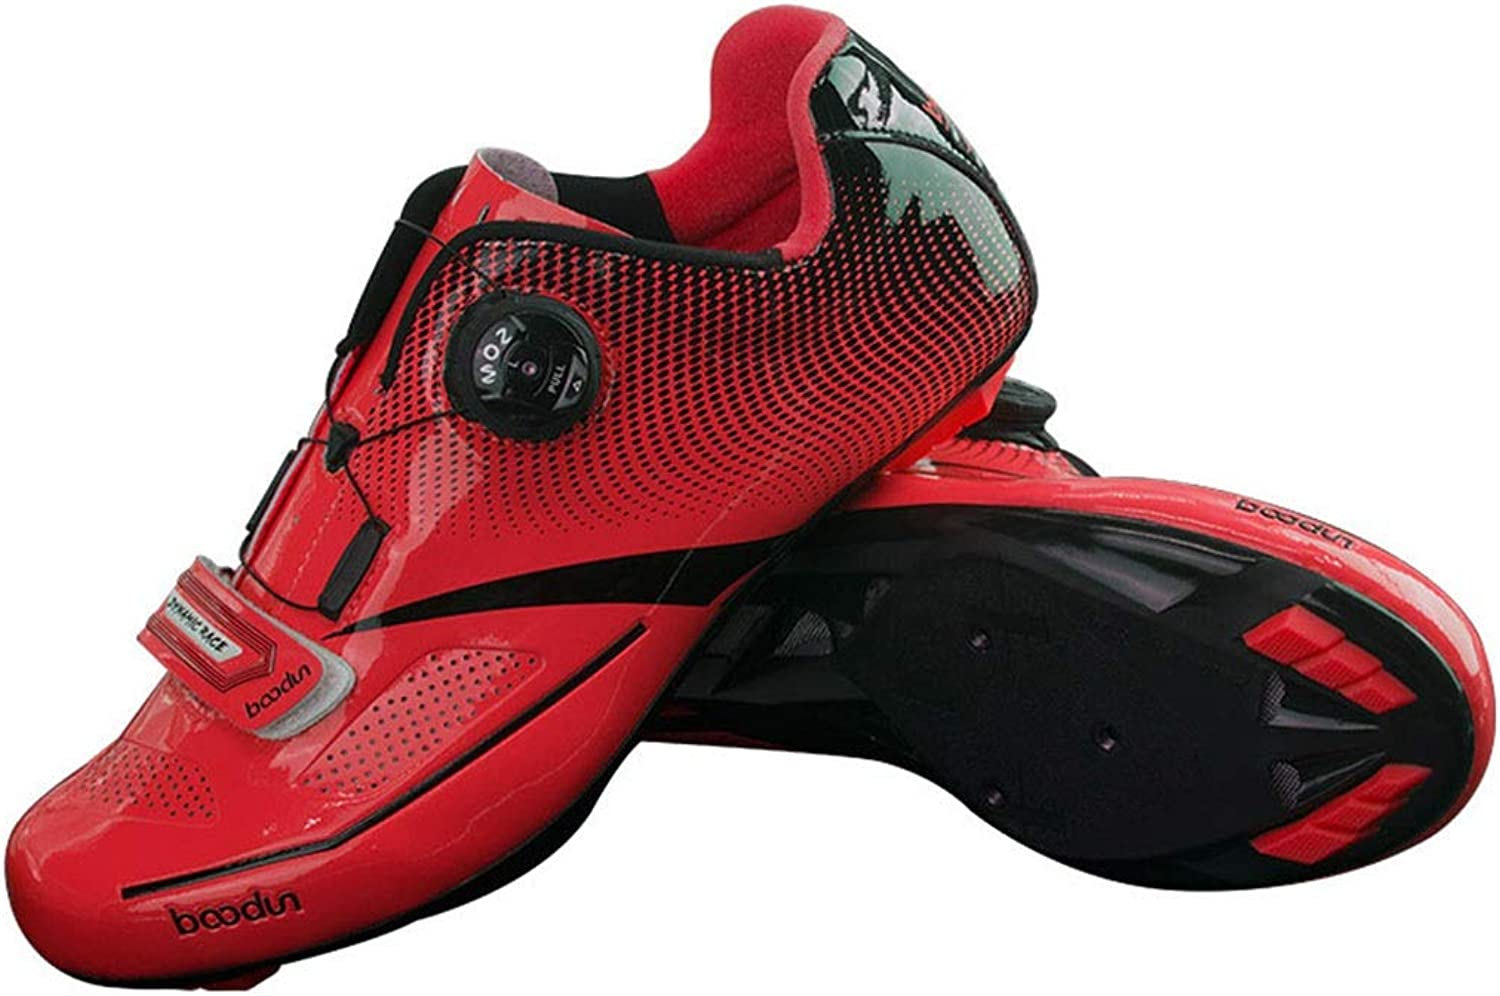 d6d130cddced4 SUN HUIJIE Breathable Cycling shoes shoes shoes Bicycle shoes ...